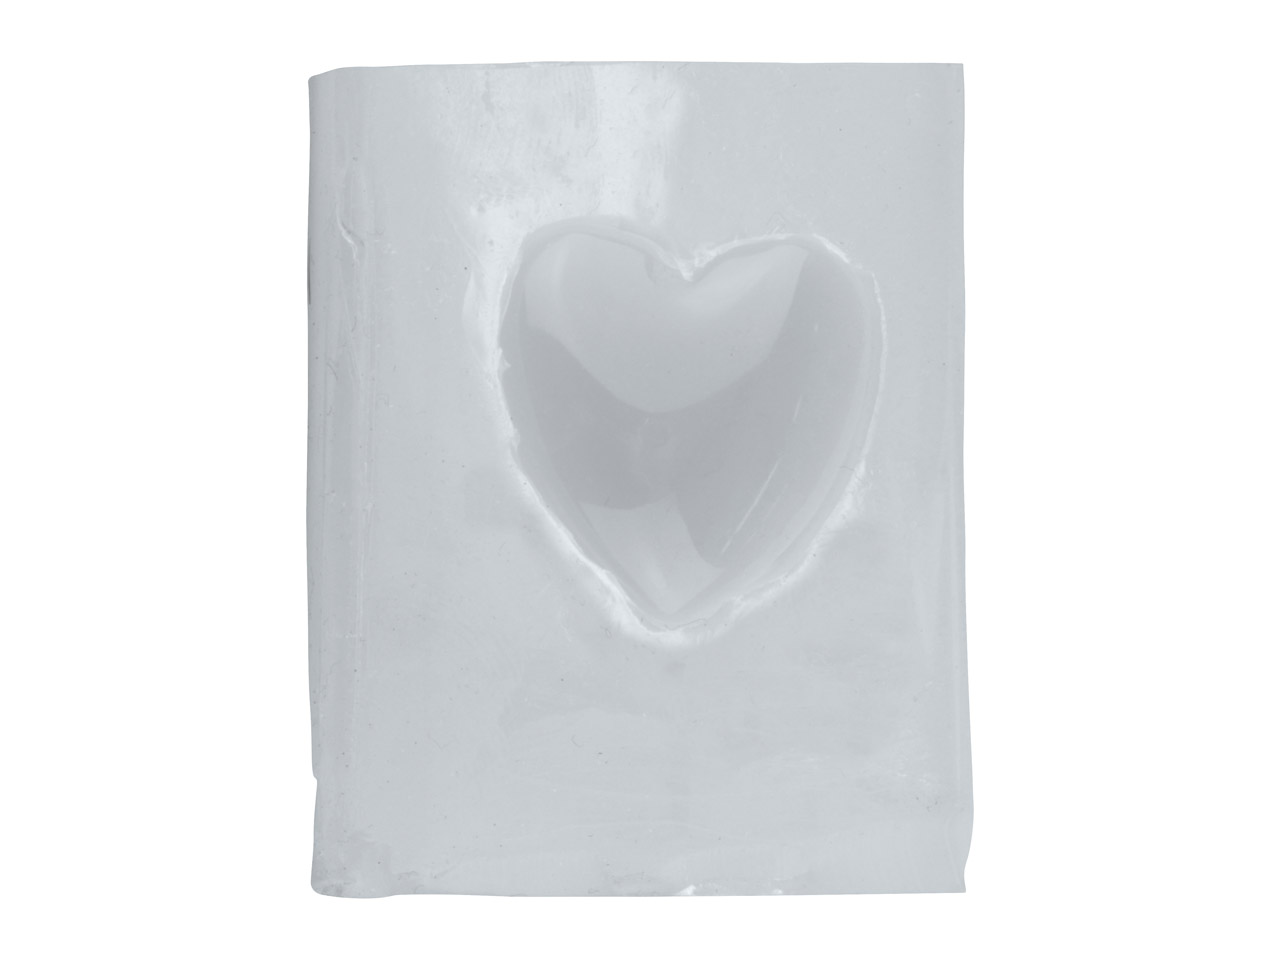 Silicone Heart Shaped Cabochon     Mould For Resin Casting